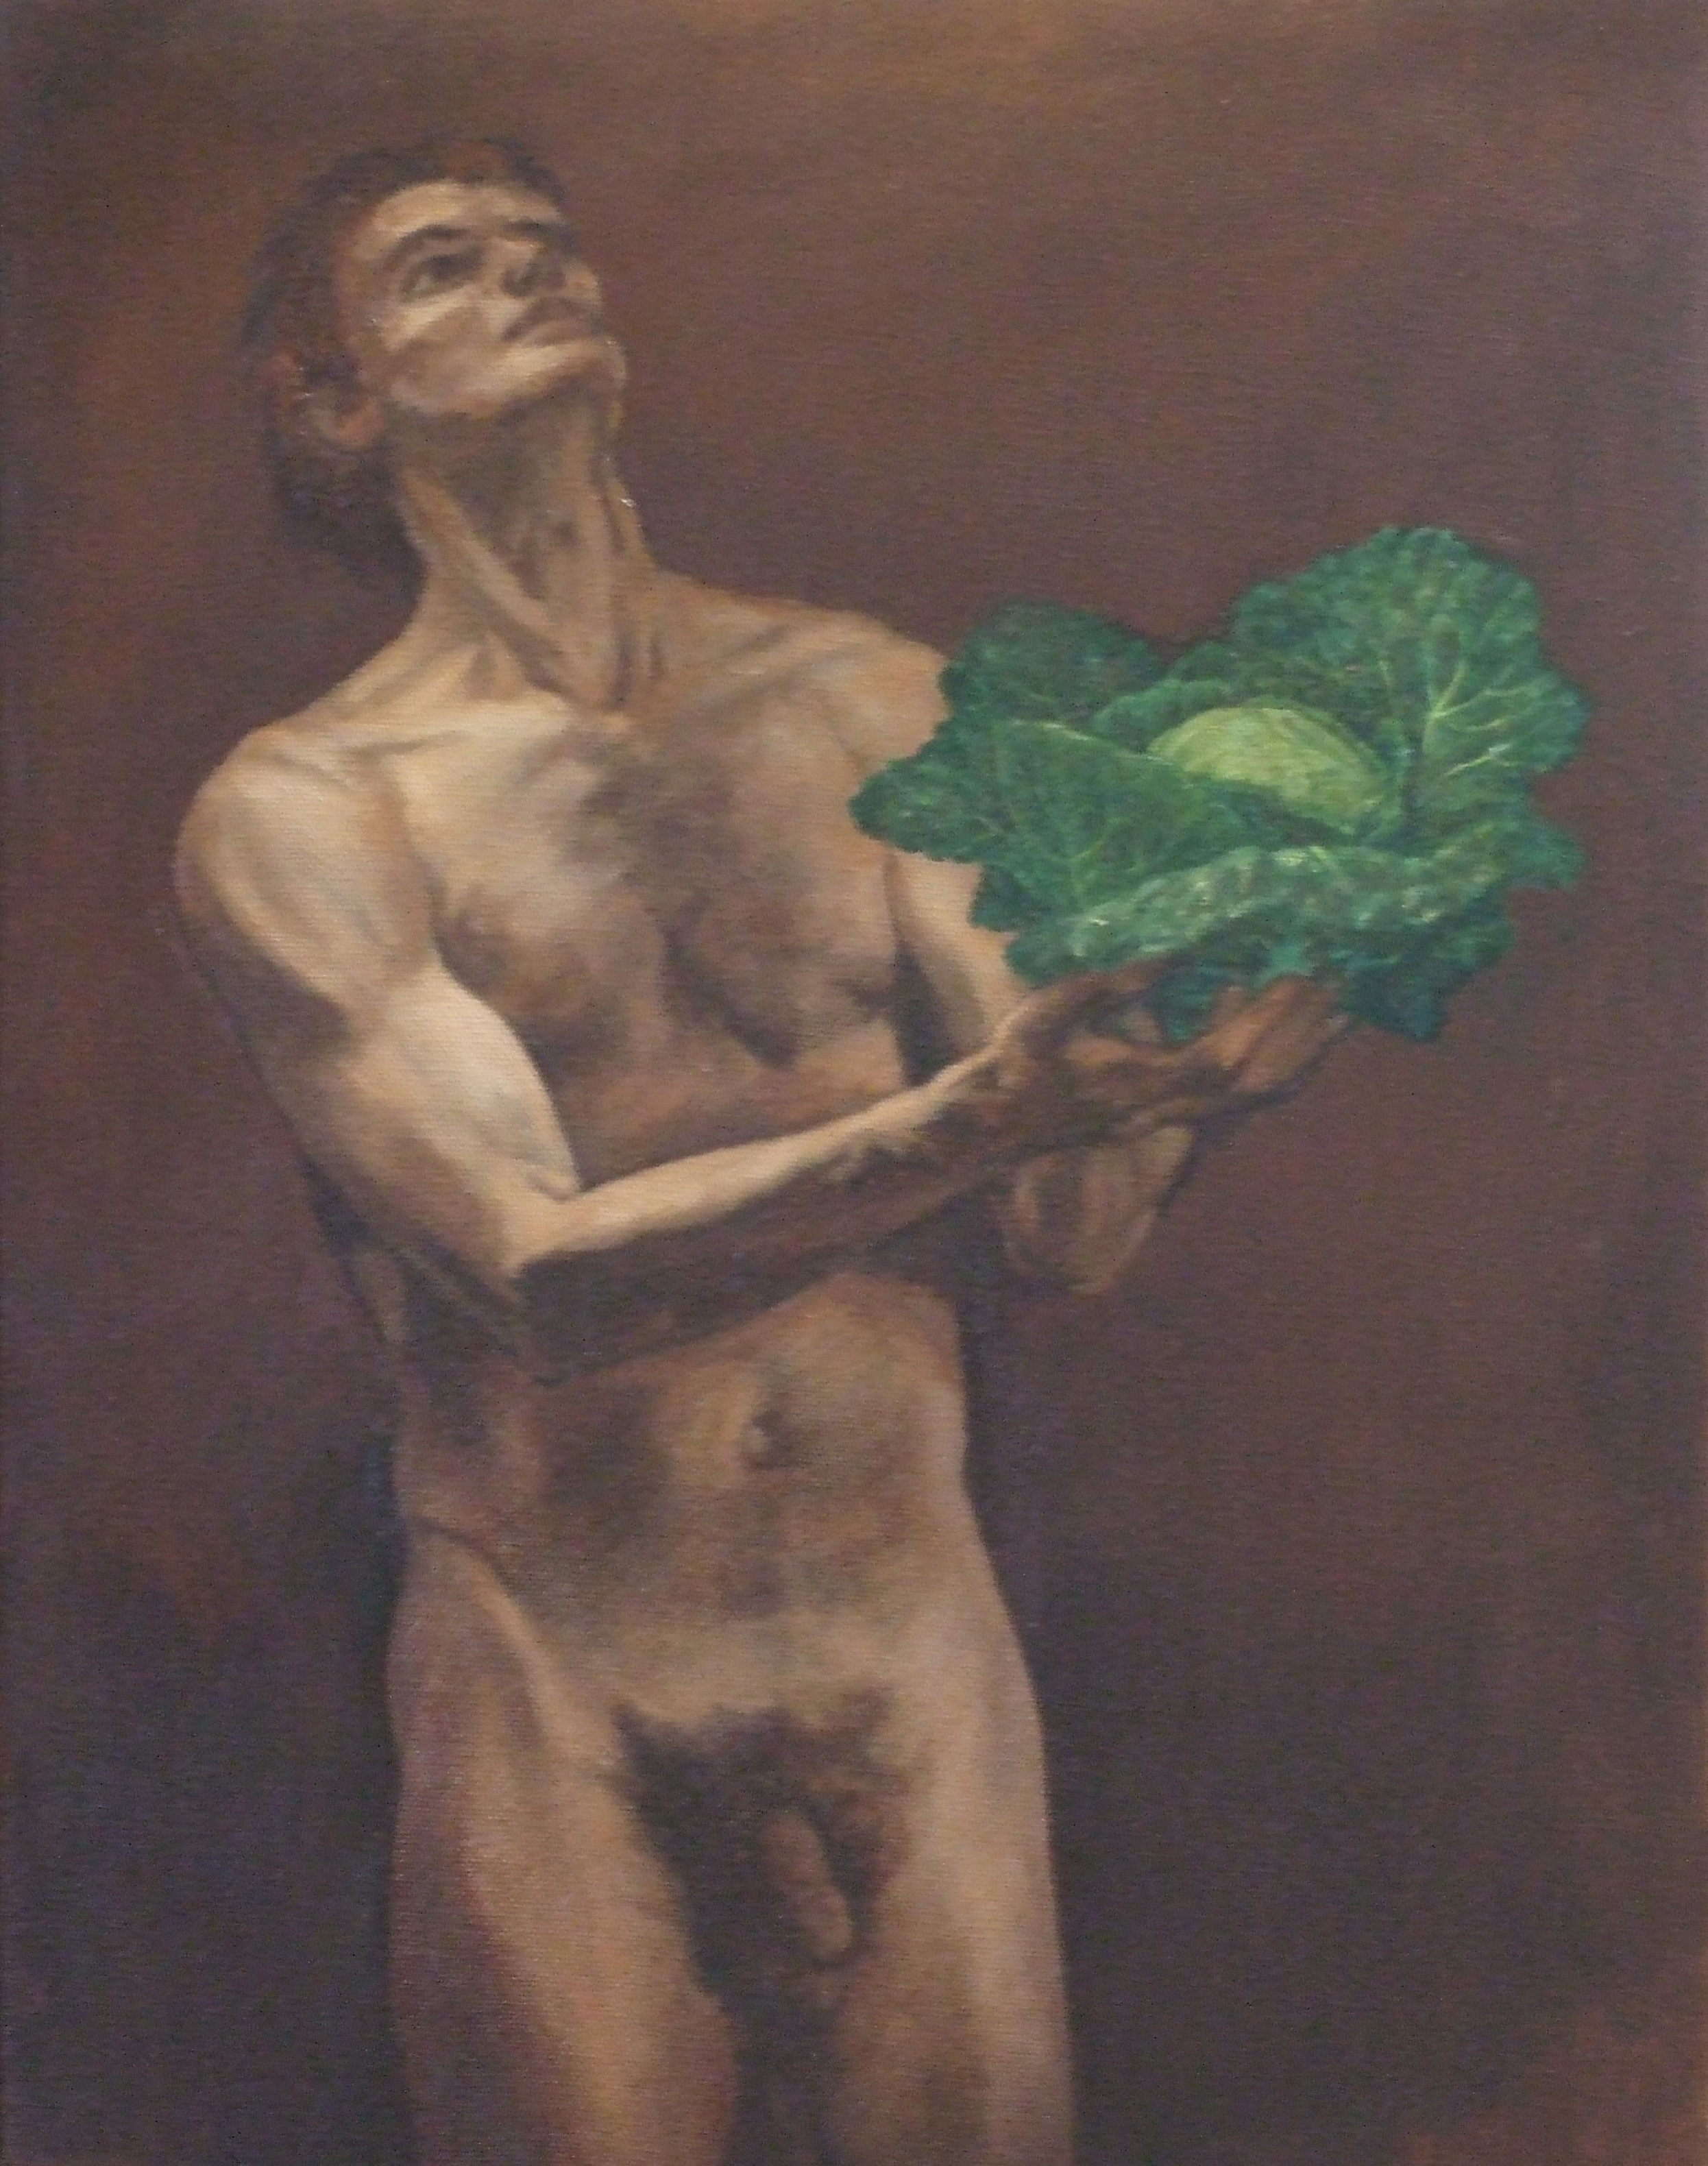 Man and Cabbage